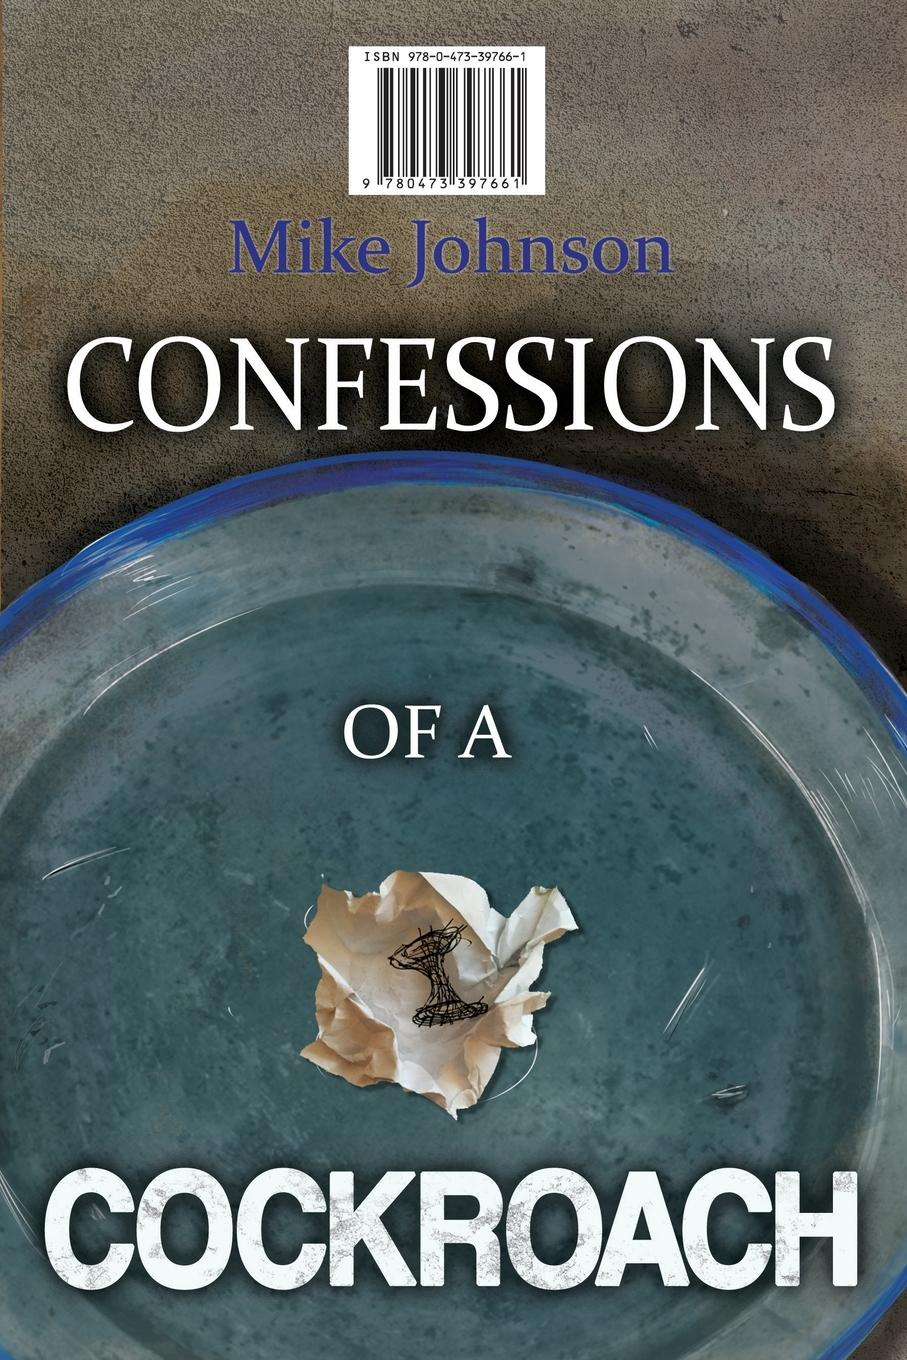 Mike Johnson Confessions of a Cockroach and Headstone